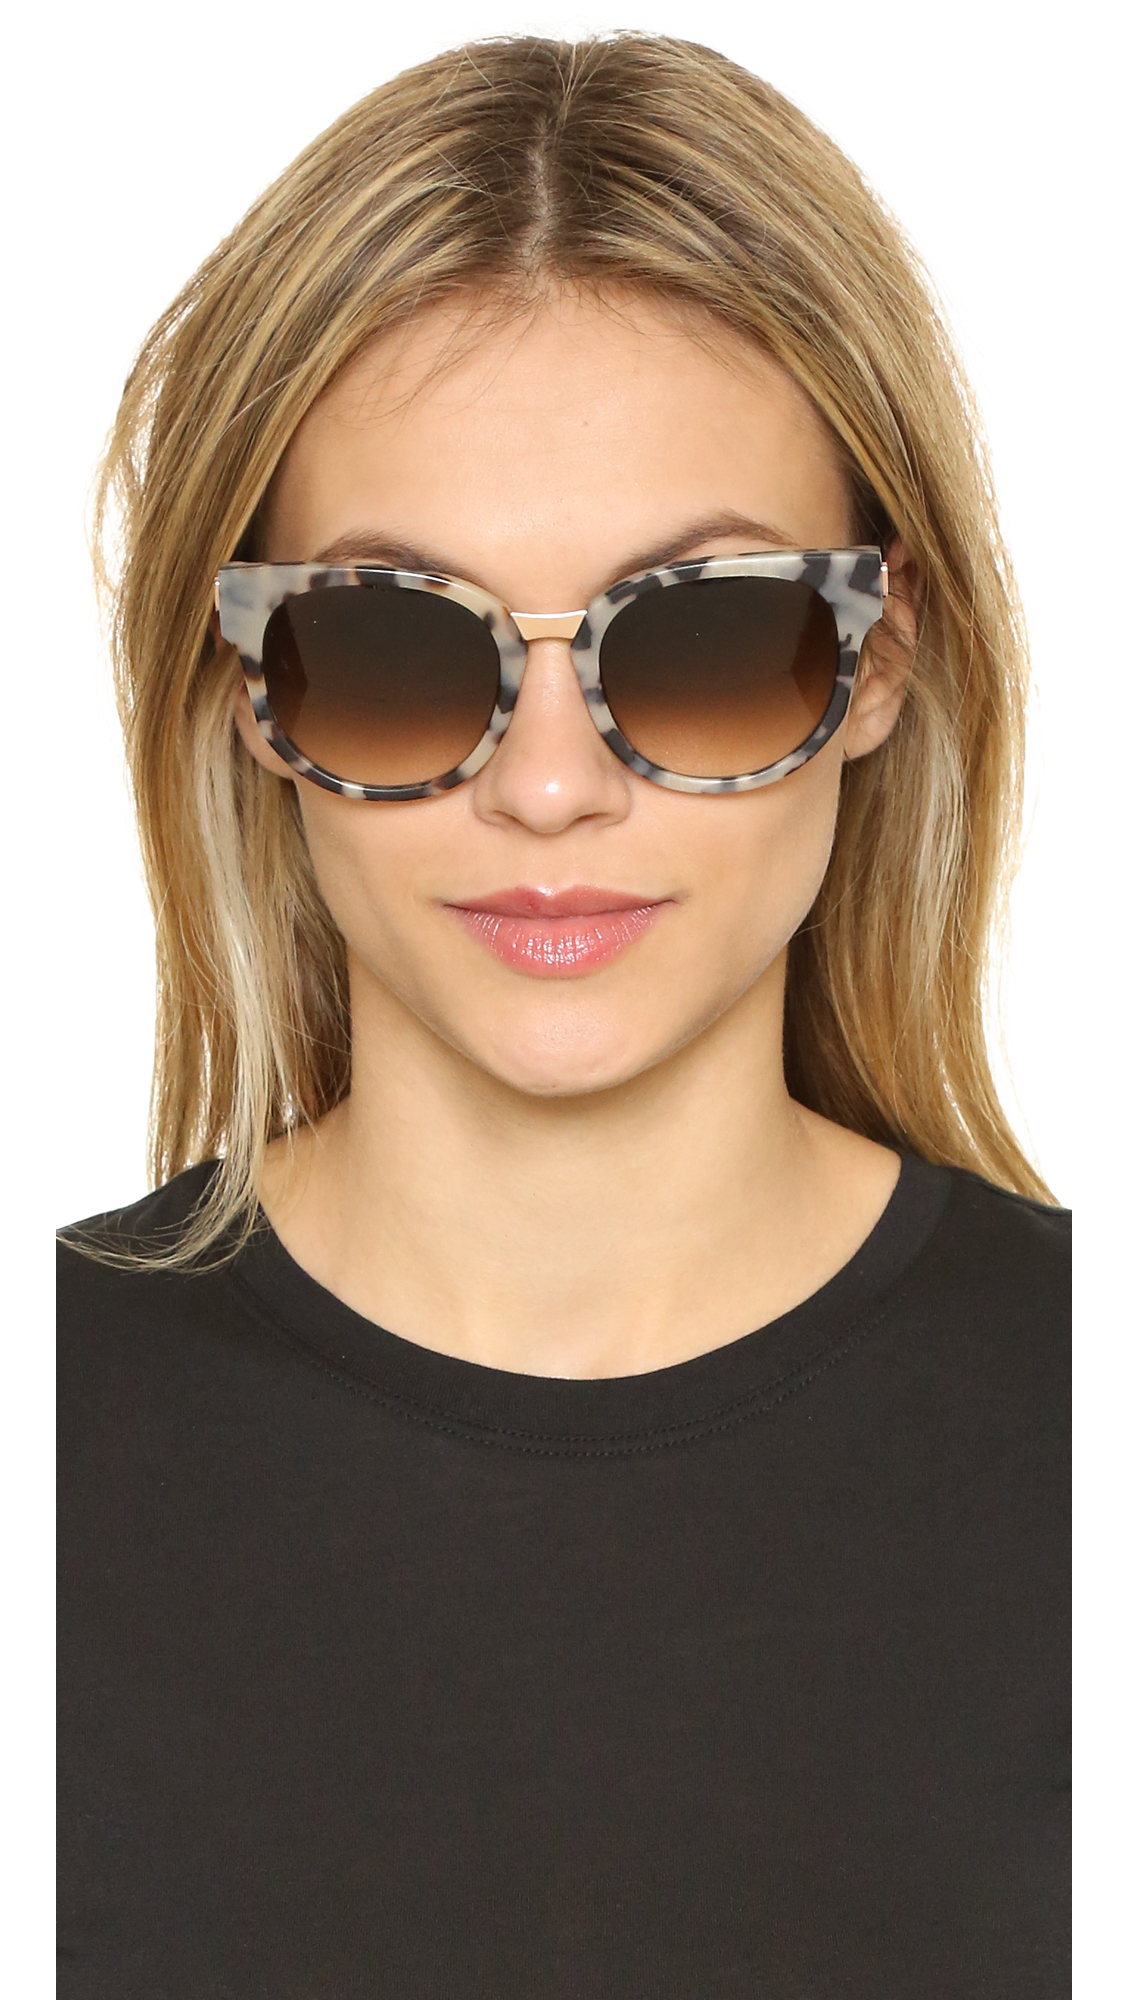 Thierry Lasry Sonnenbrille Affinity oqgqiyn